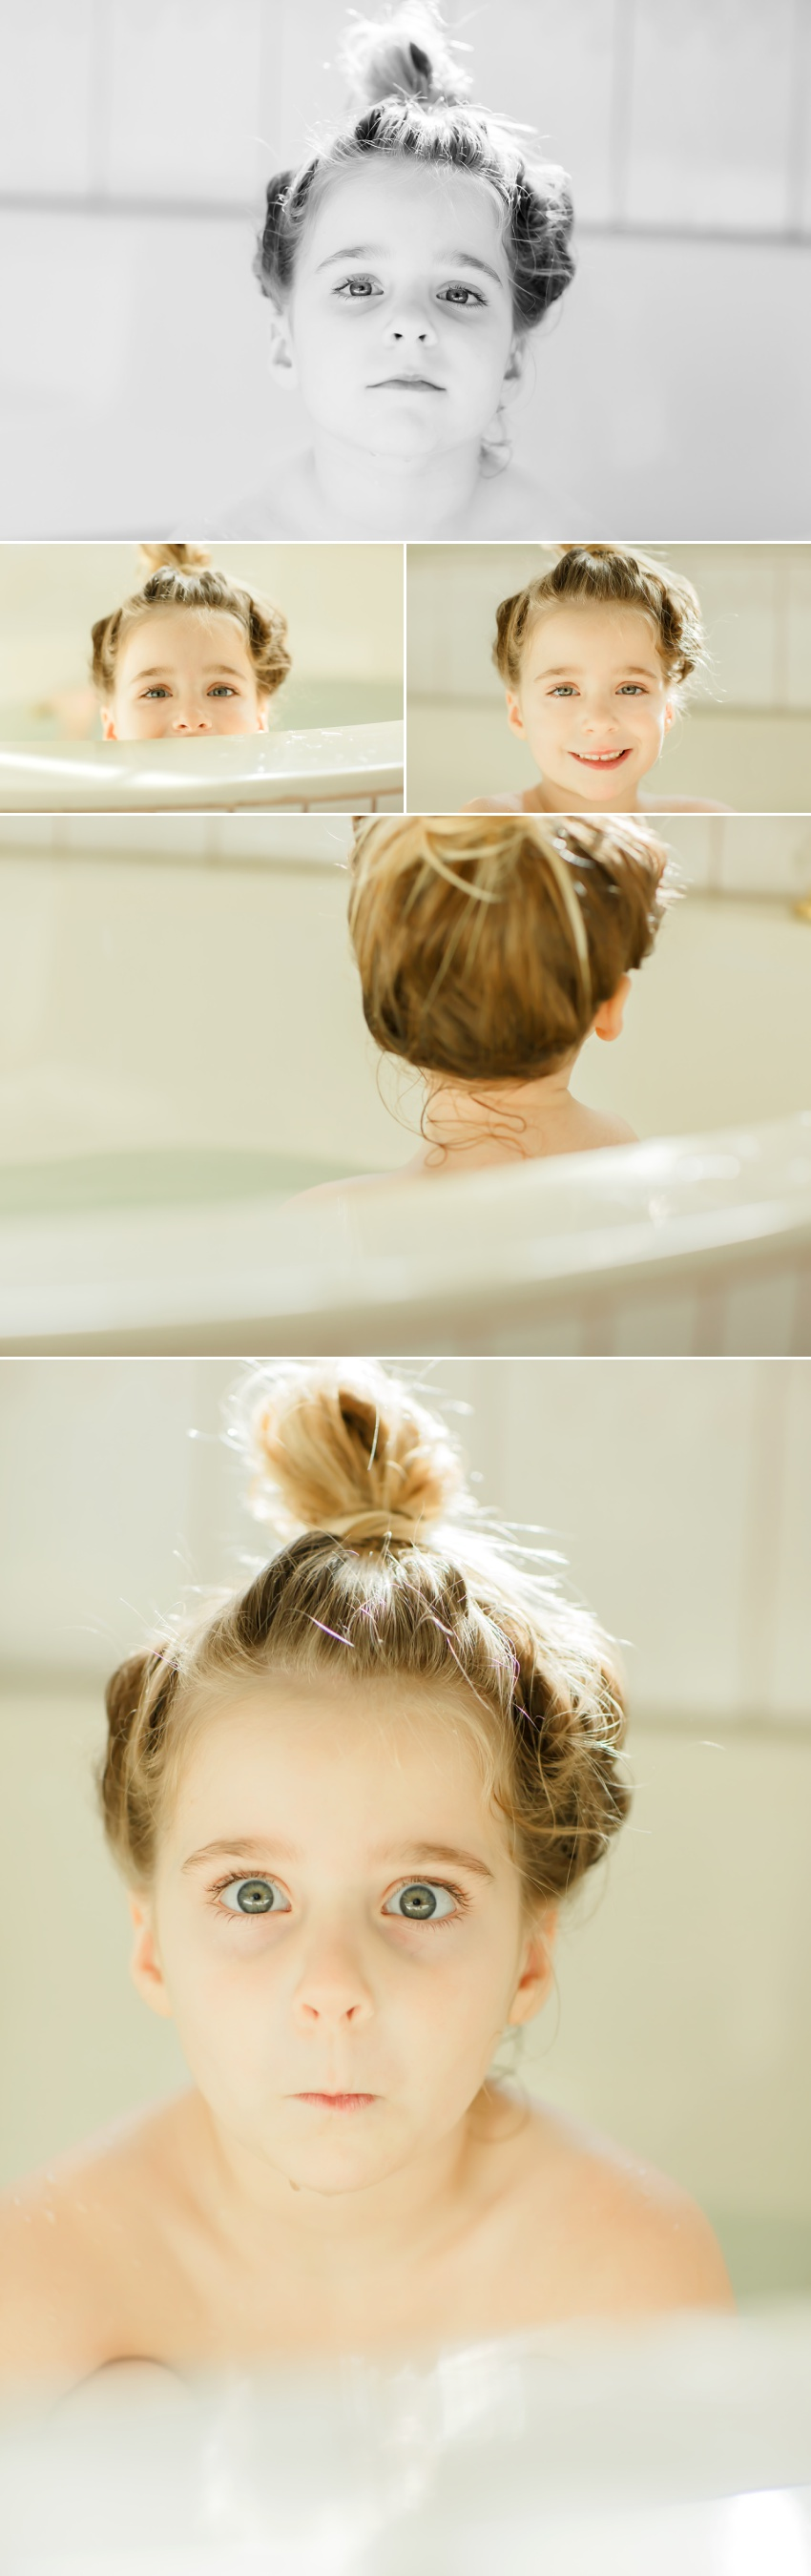 Lifestyle family pictures in El Dorado Hills for my little 4 year old during bath time by Colleen Sanders Photography.